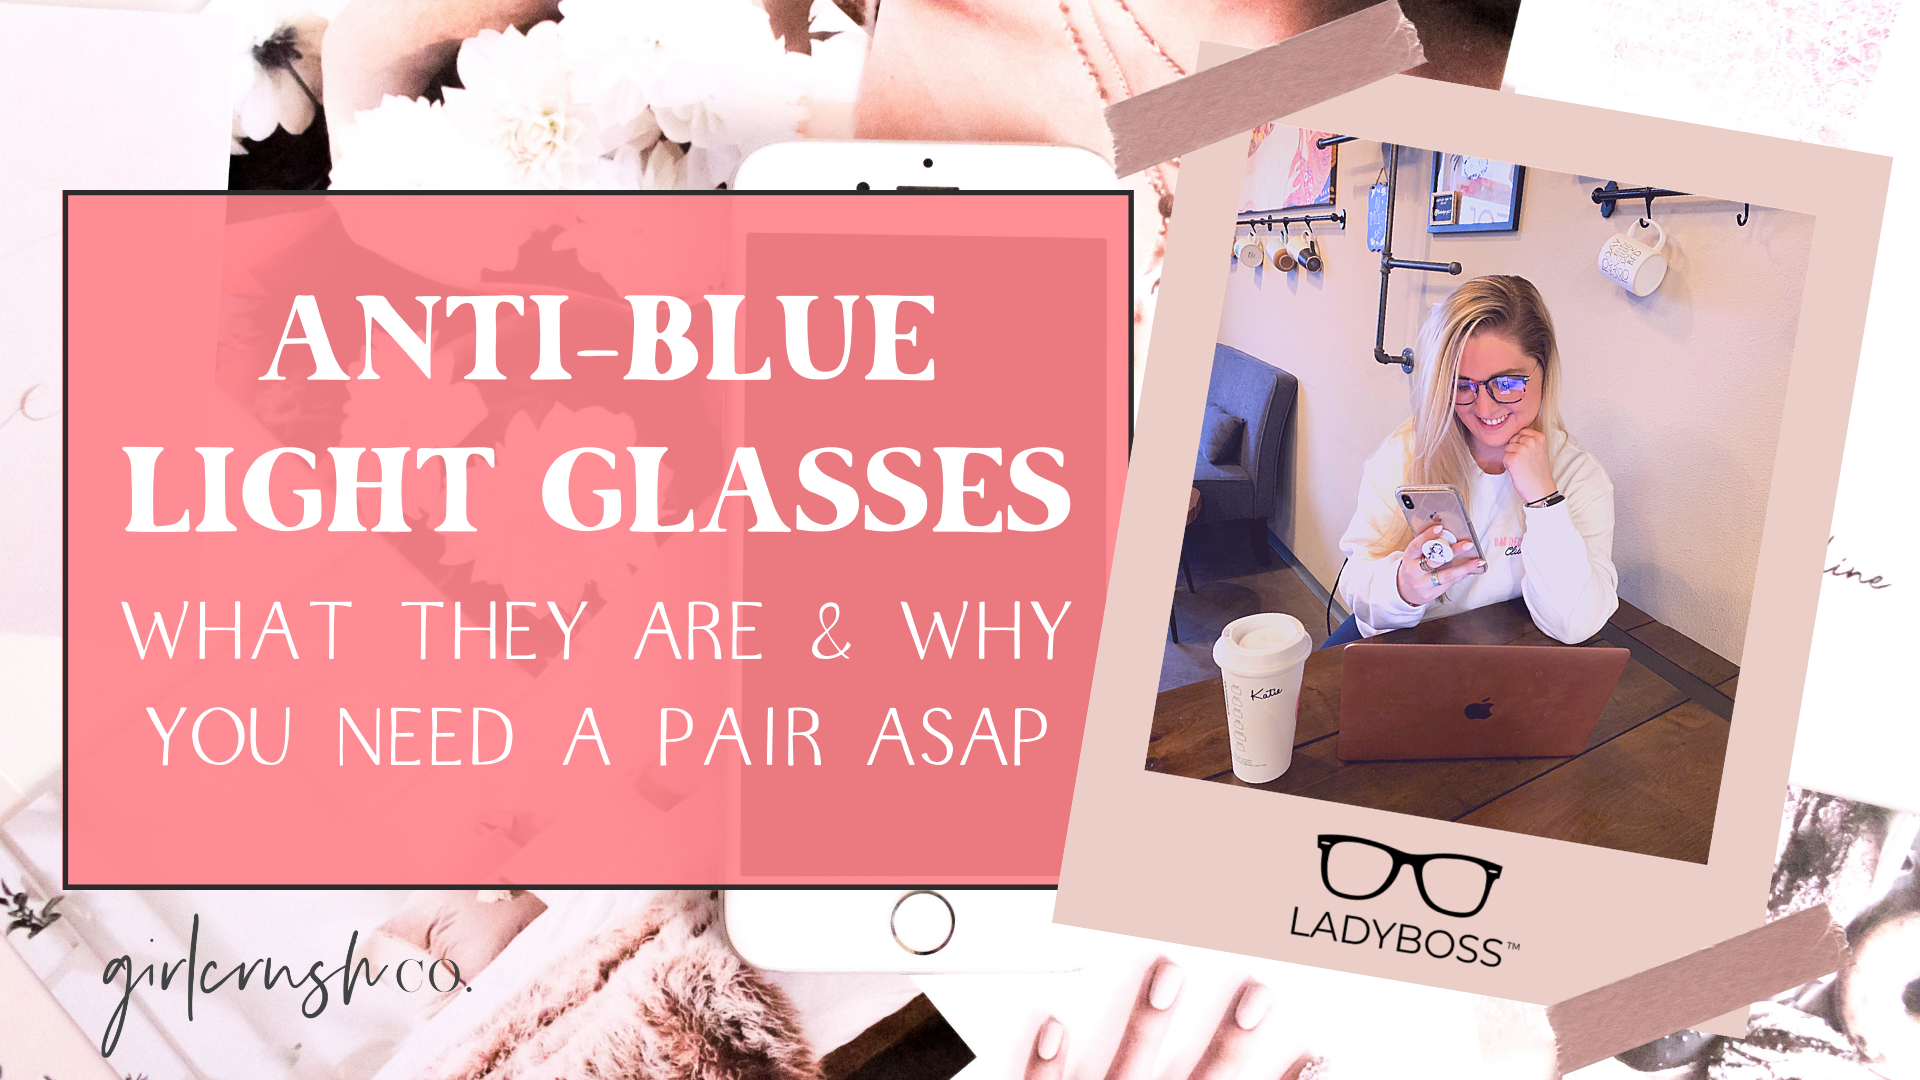 anti-blue light glasses ladyboss glasses